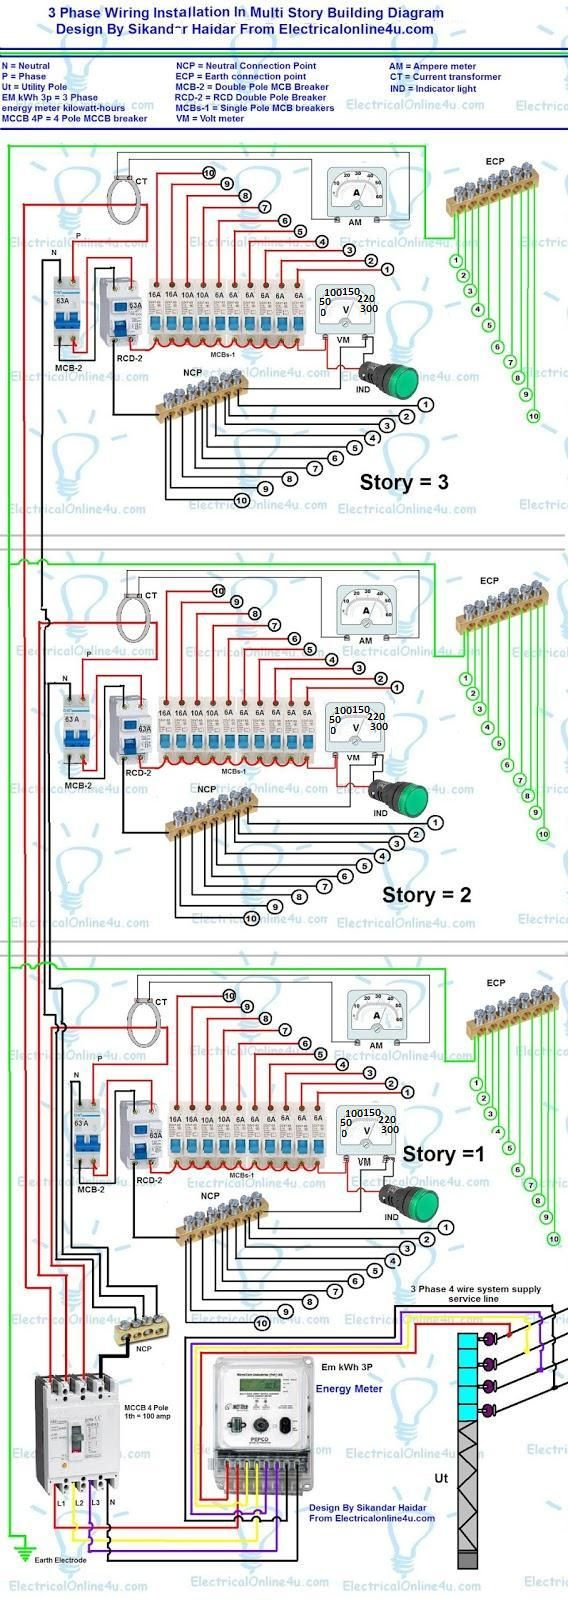 medium resolution of 3 phase wiring installation diagram